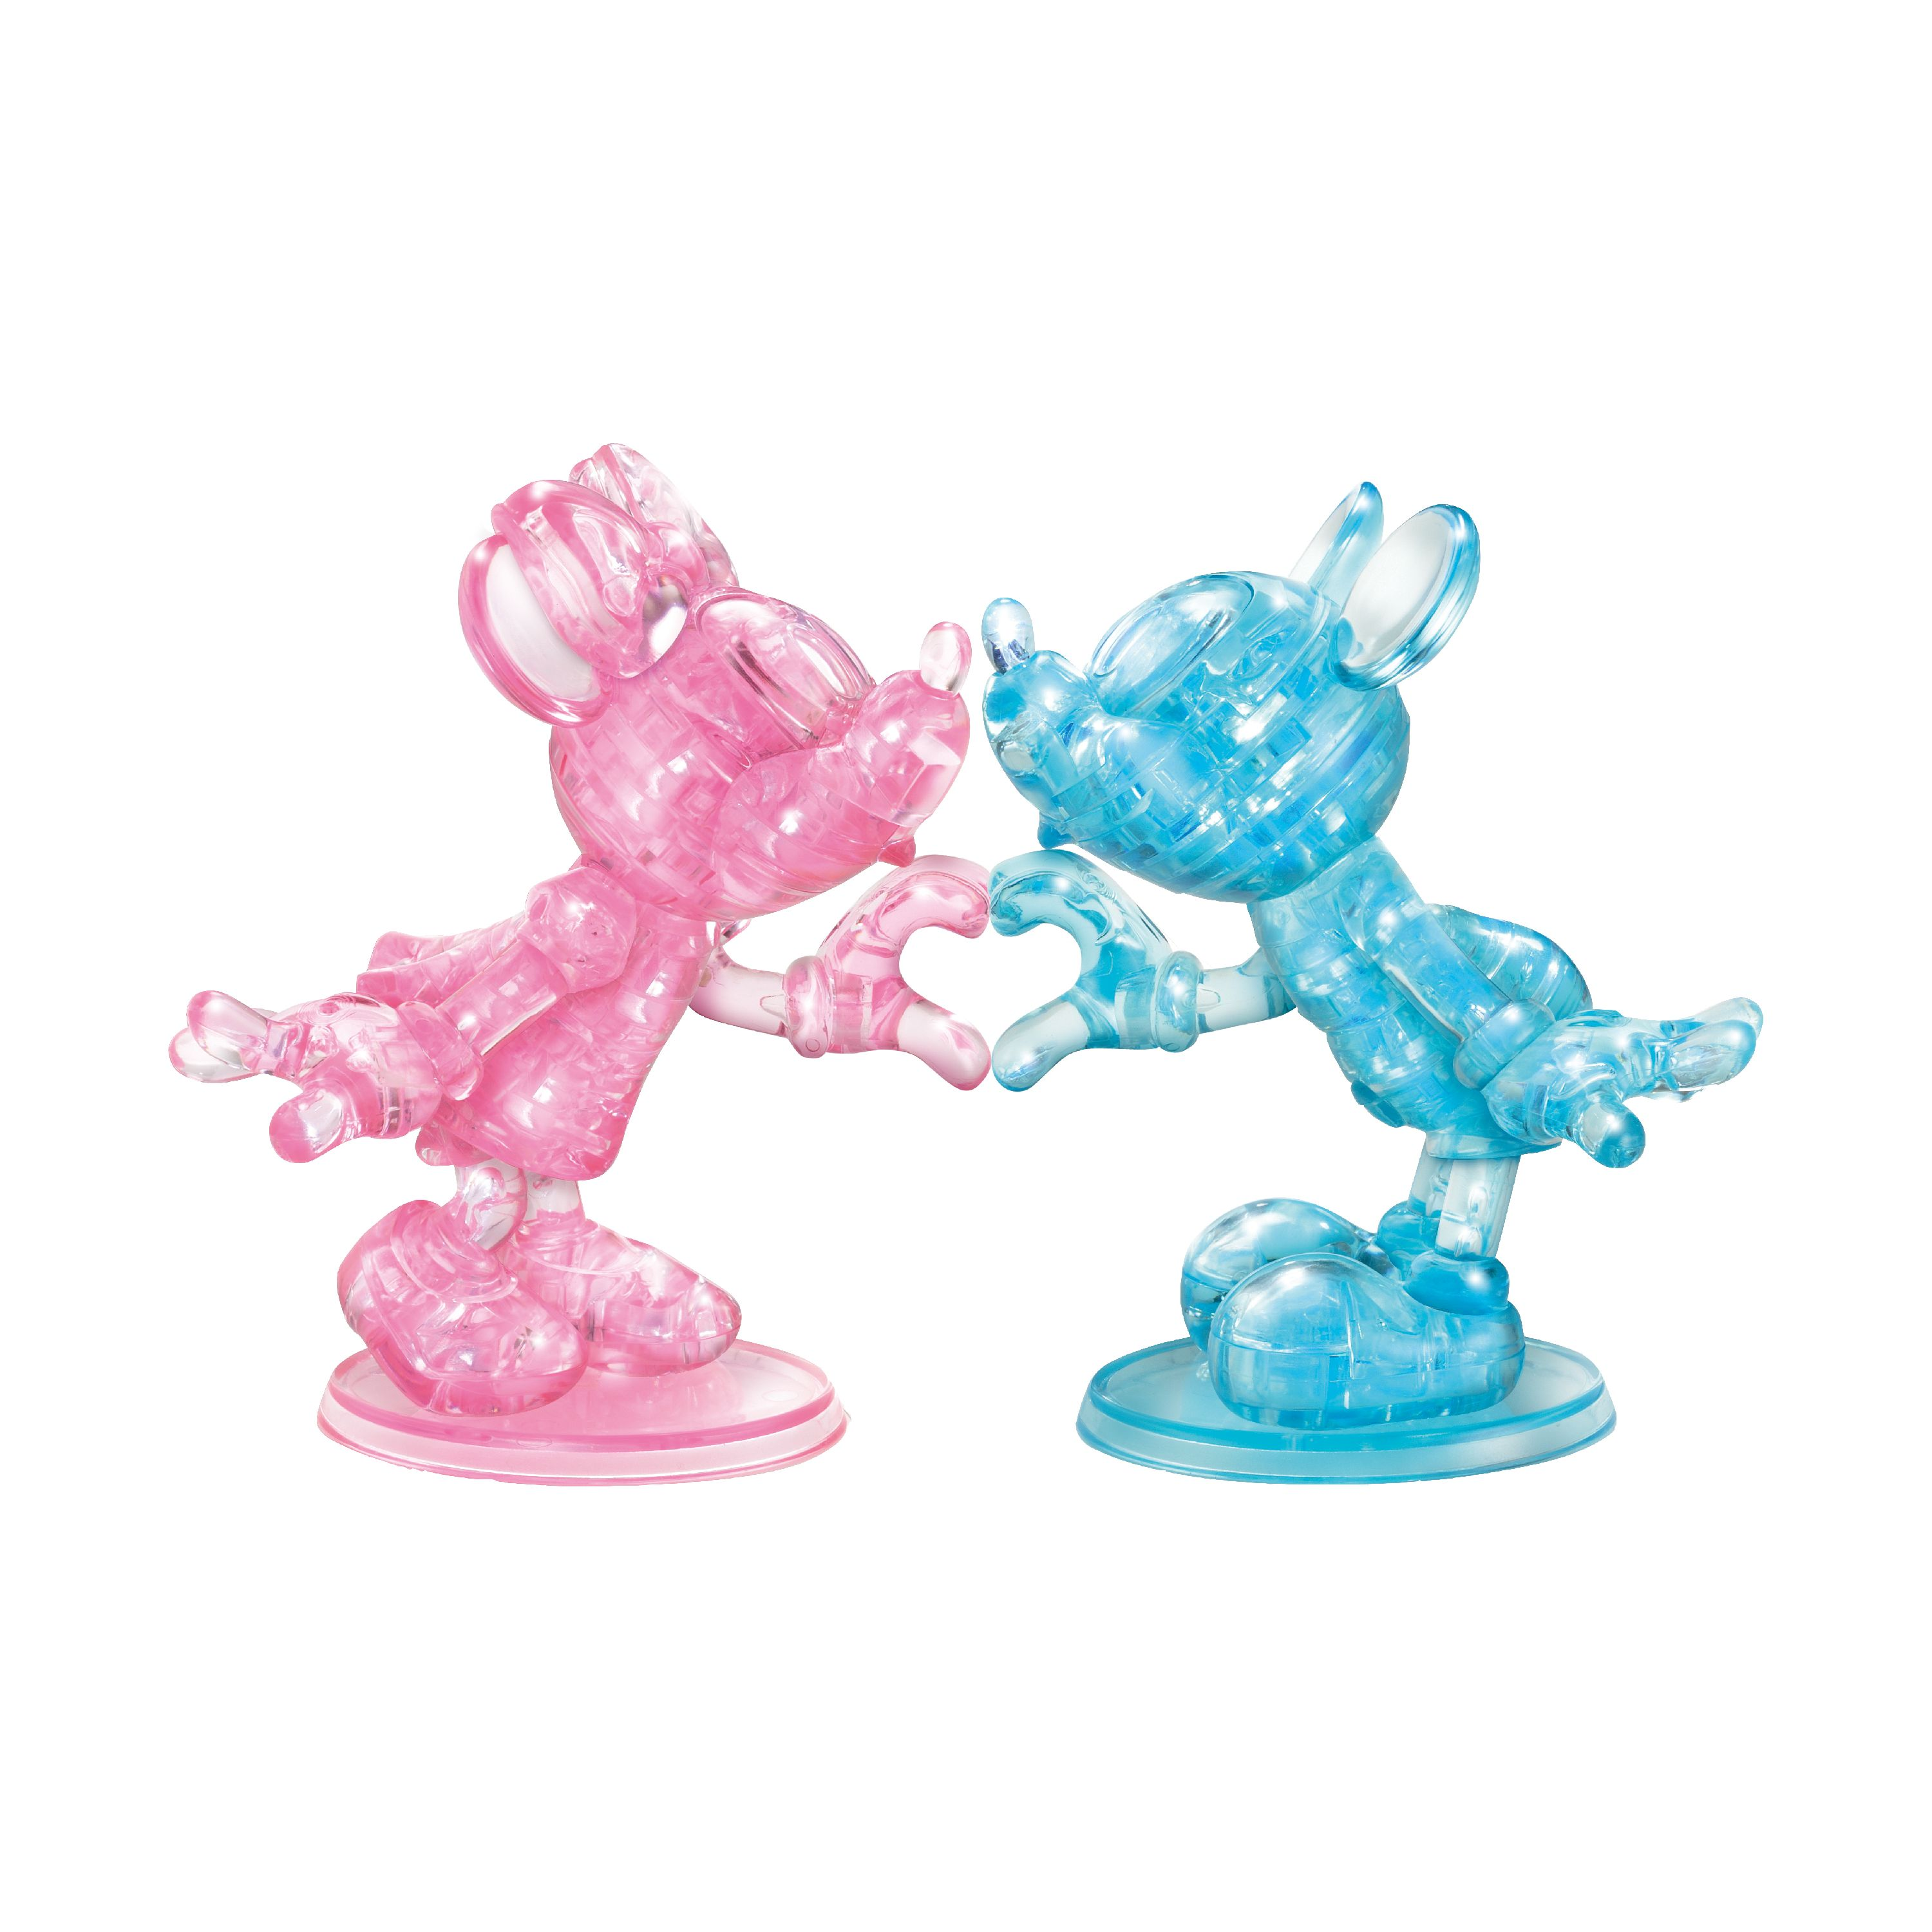 Deluxe Disney 3D Crystal Puzzle - Minnie and Mickey Mouse Heart, 68 Pcs